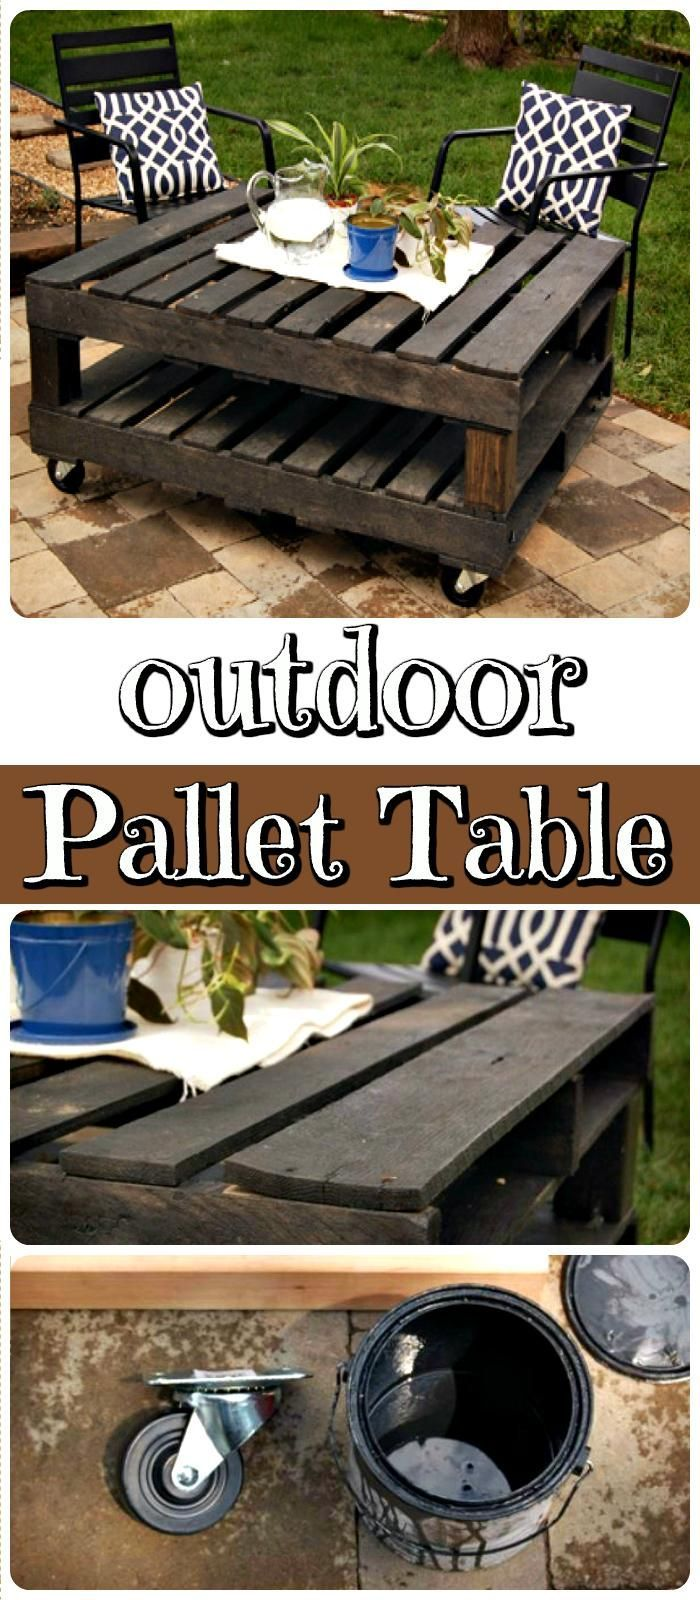 DIY Outdoor Pallet Coffee Table on Wheels - 150 Best DIY Pallet Projects and Pal...